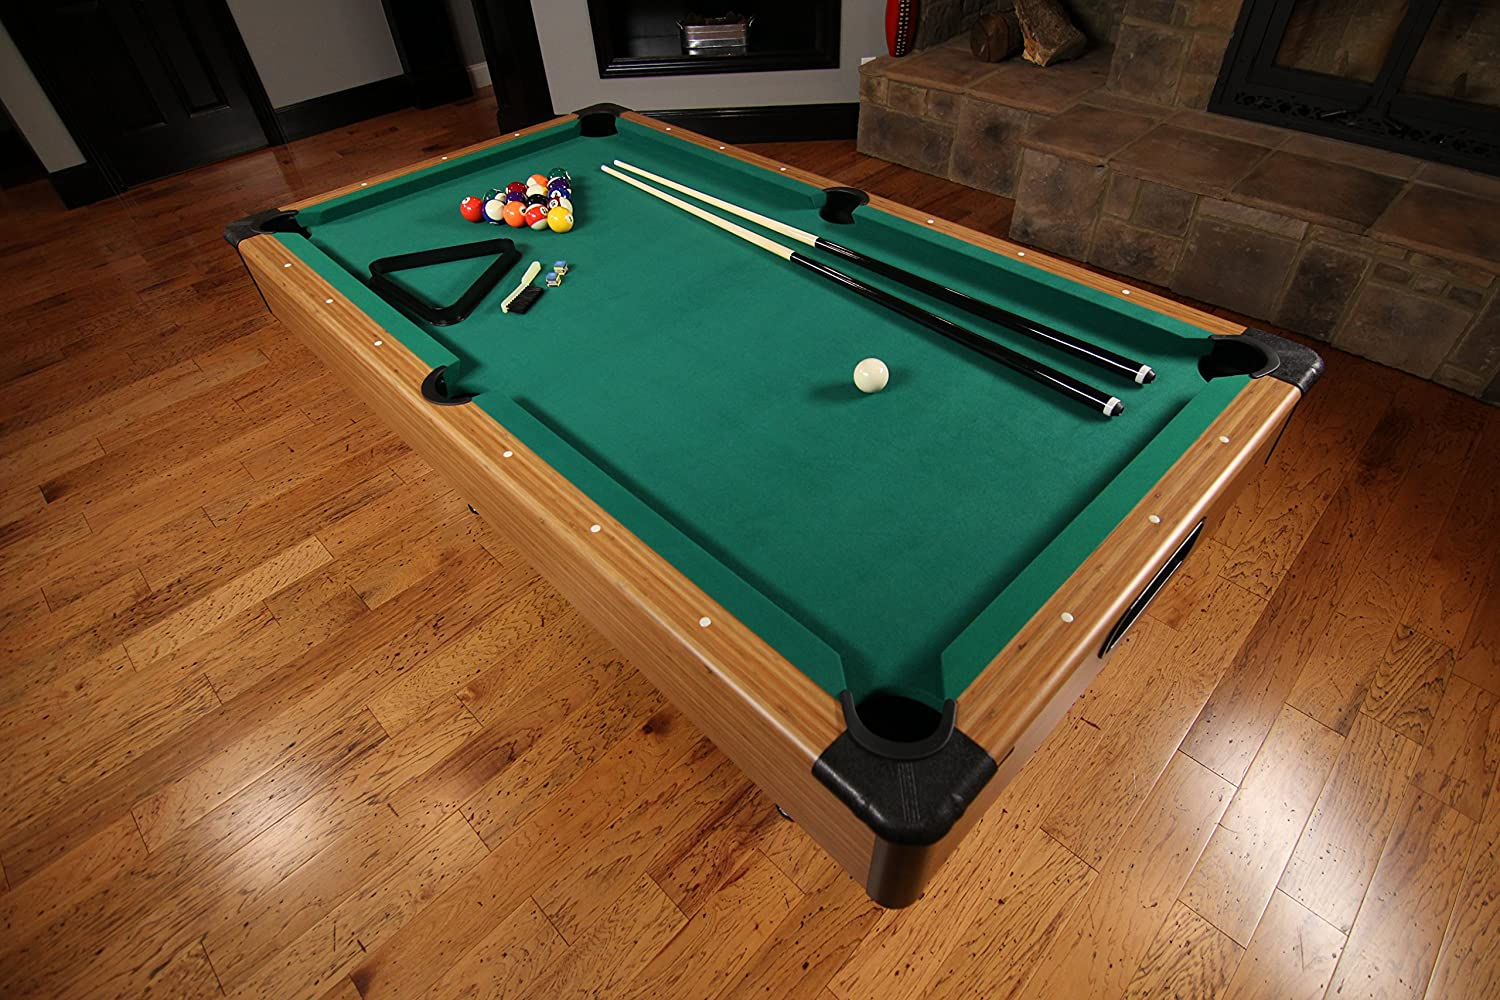 the black corner posts further accentuate its elegant look and really make it seem as if it fits in a room filled with world class players instead of your - How To Make A Pool Table